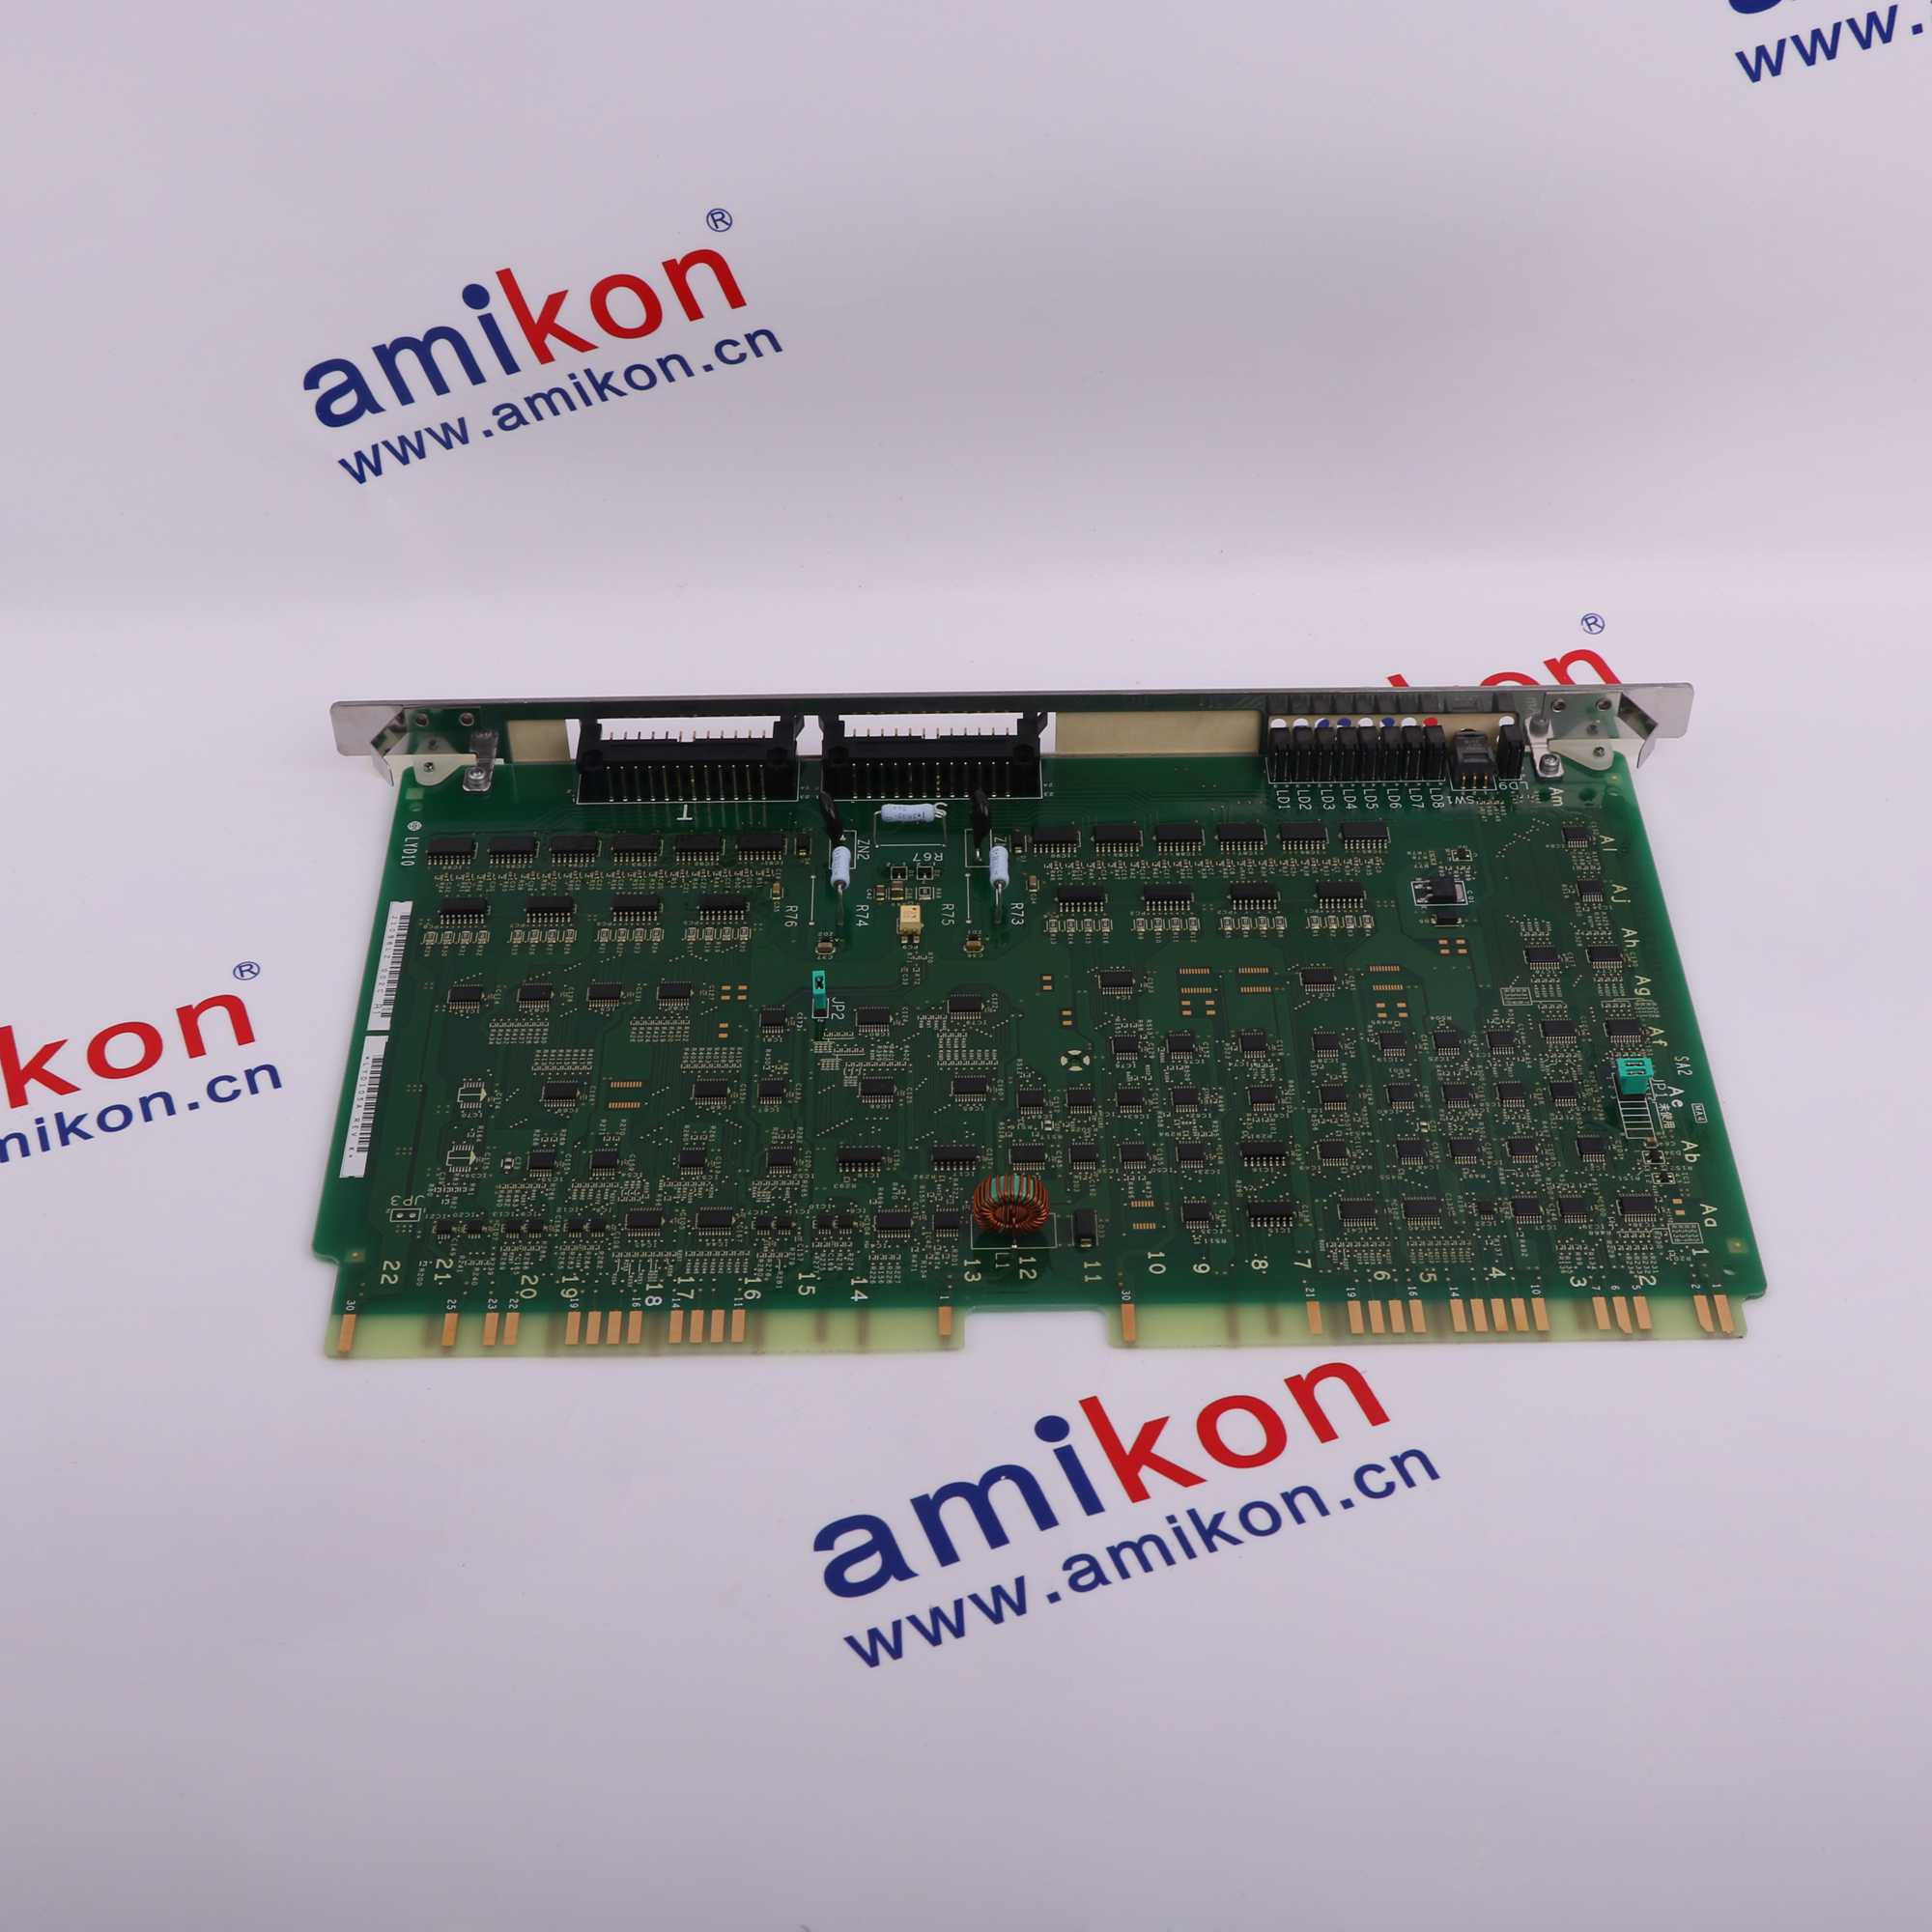 LAM PCB, ESC BICEP II DC-PROBE POWER SUPPLY 810-495659-308